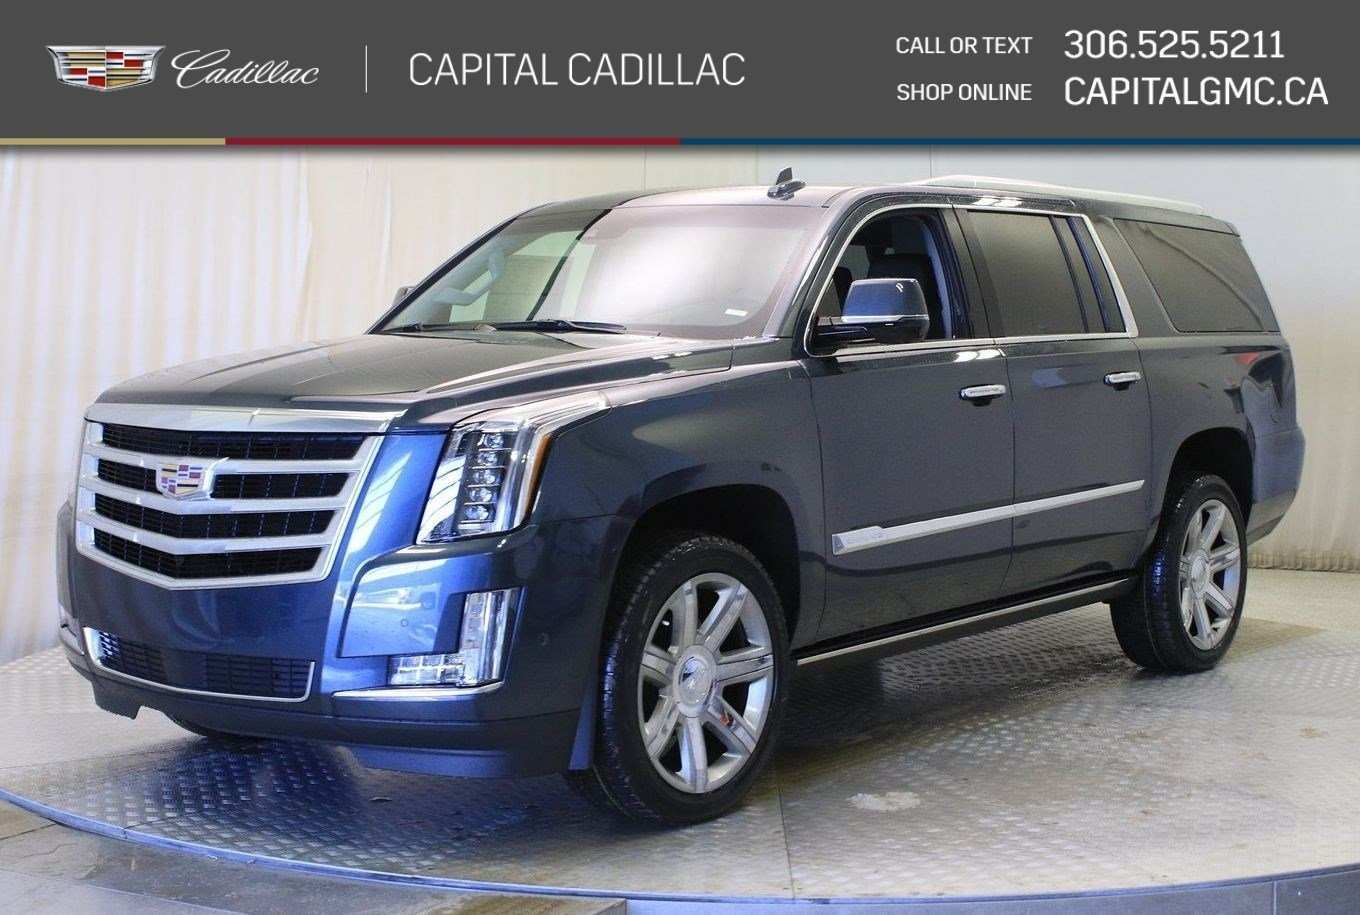 87 New 2019 Cadillac Escalade Price Price And Review